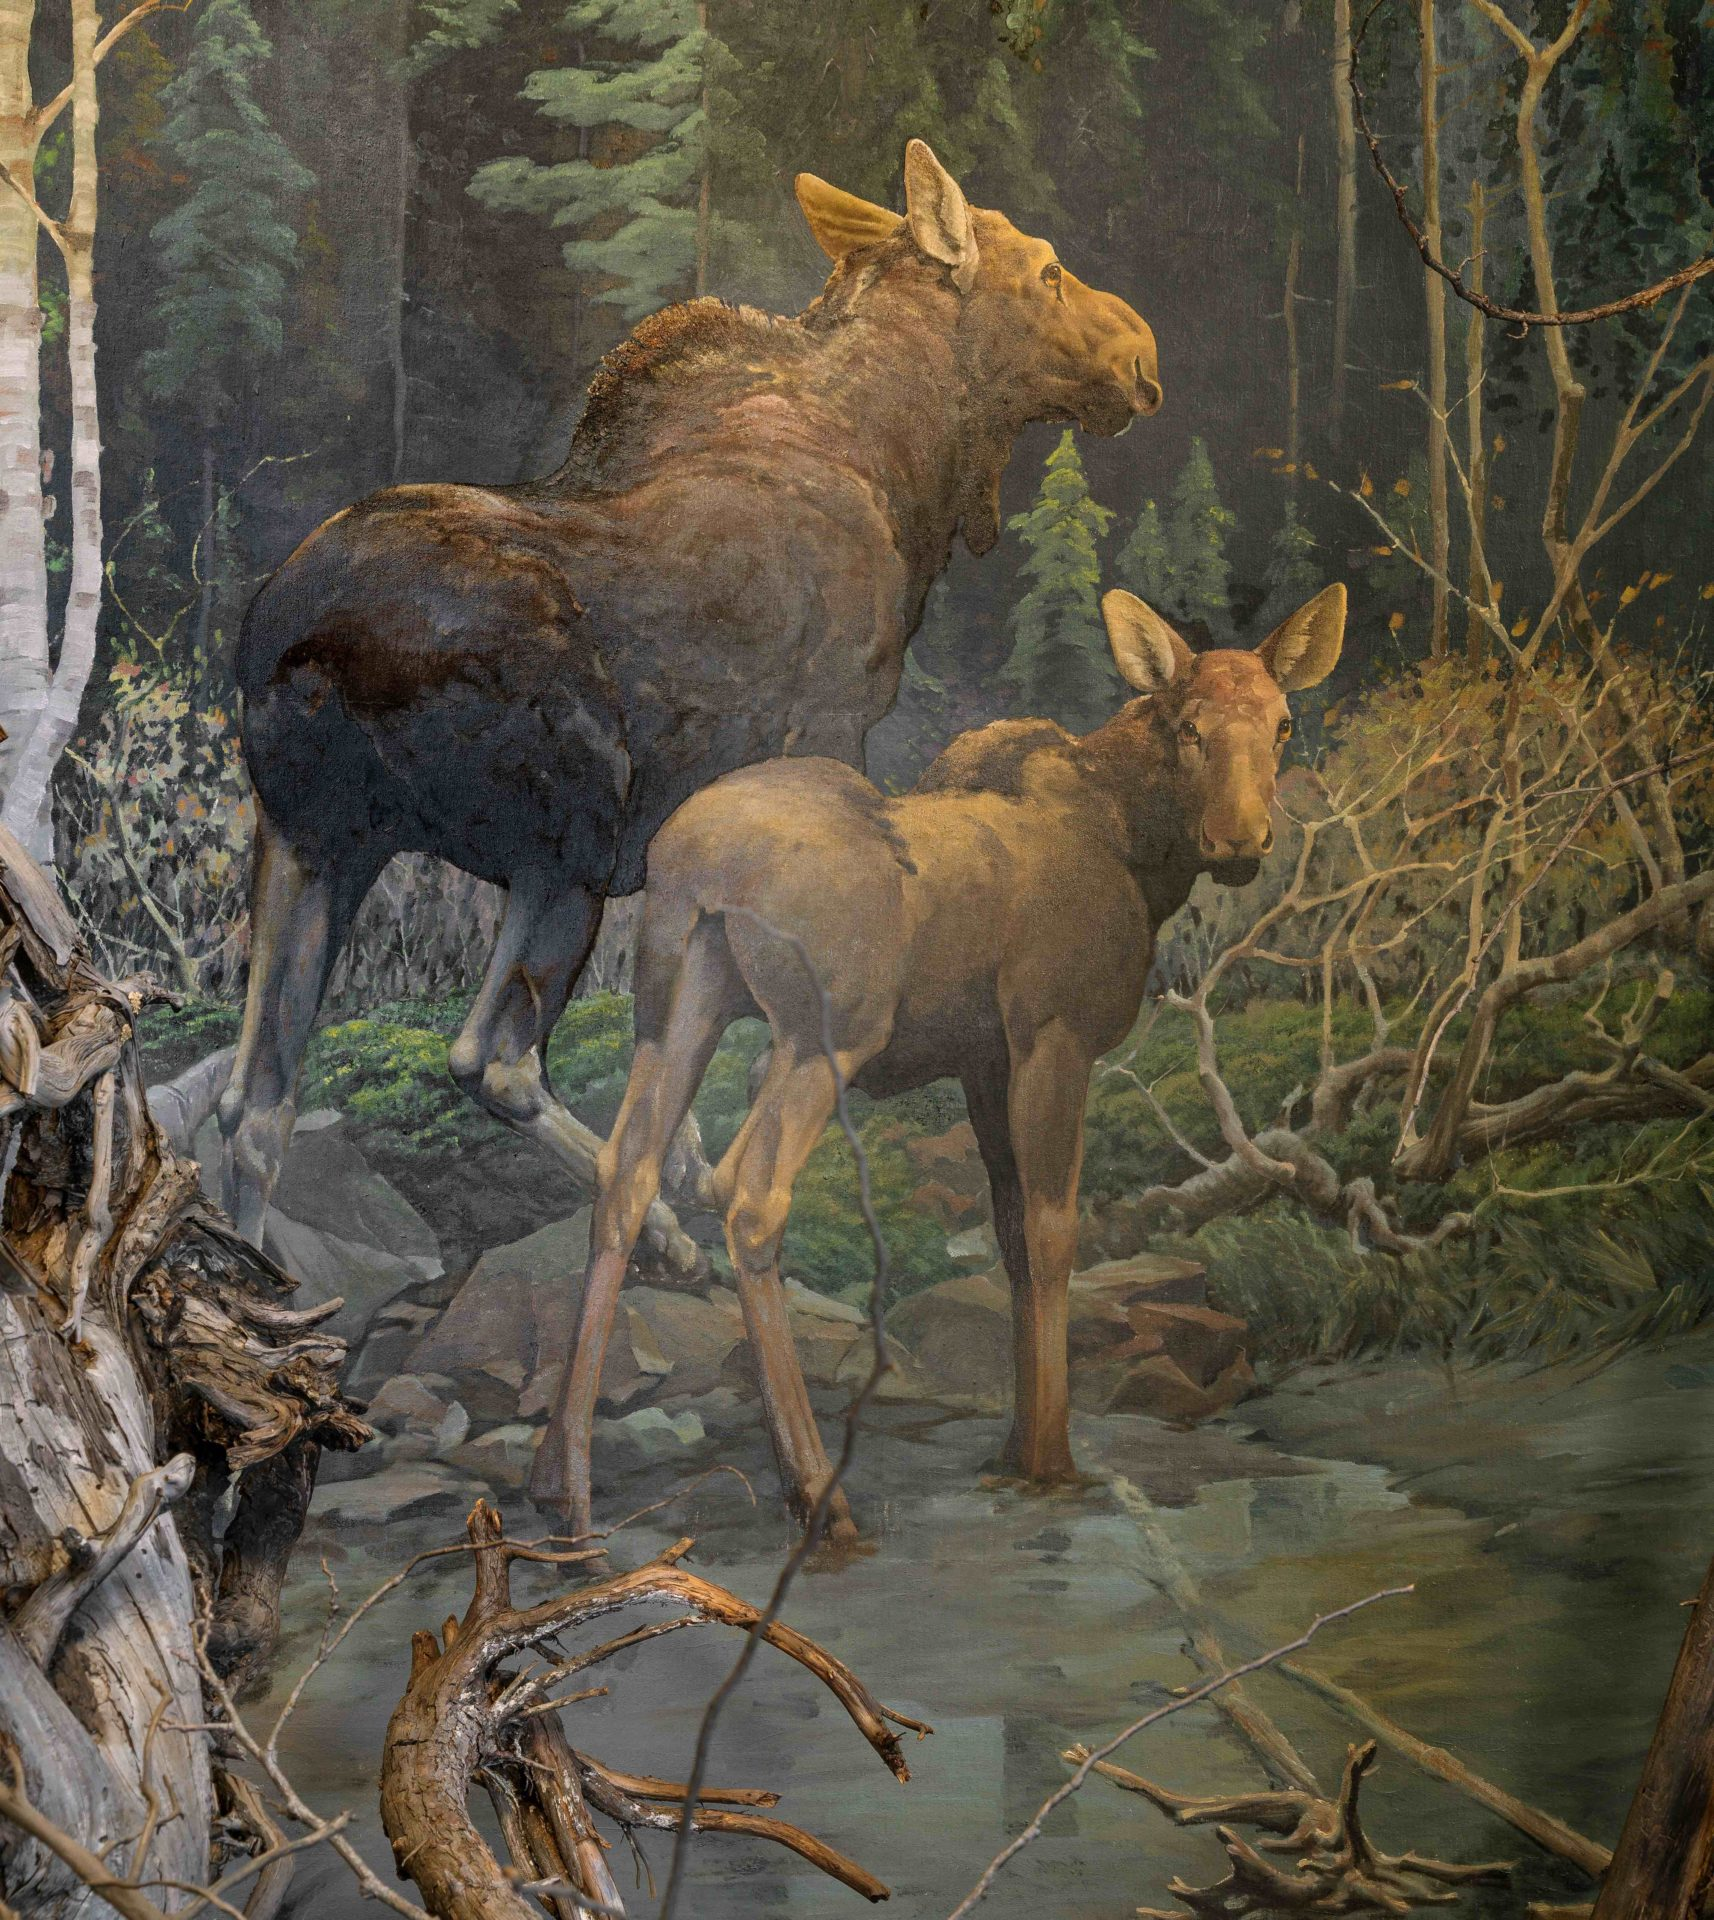 Francis Lee Jaques background painting of mother and calf moose